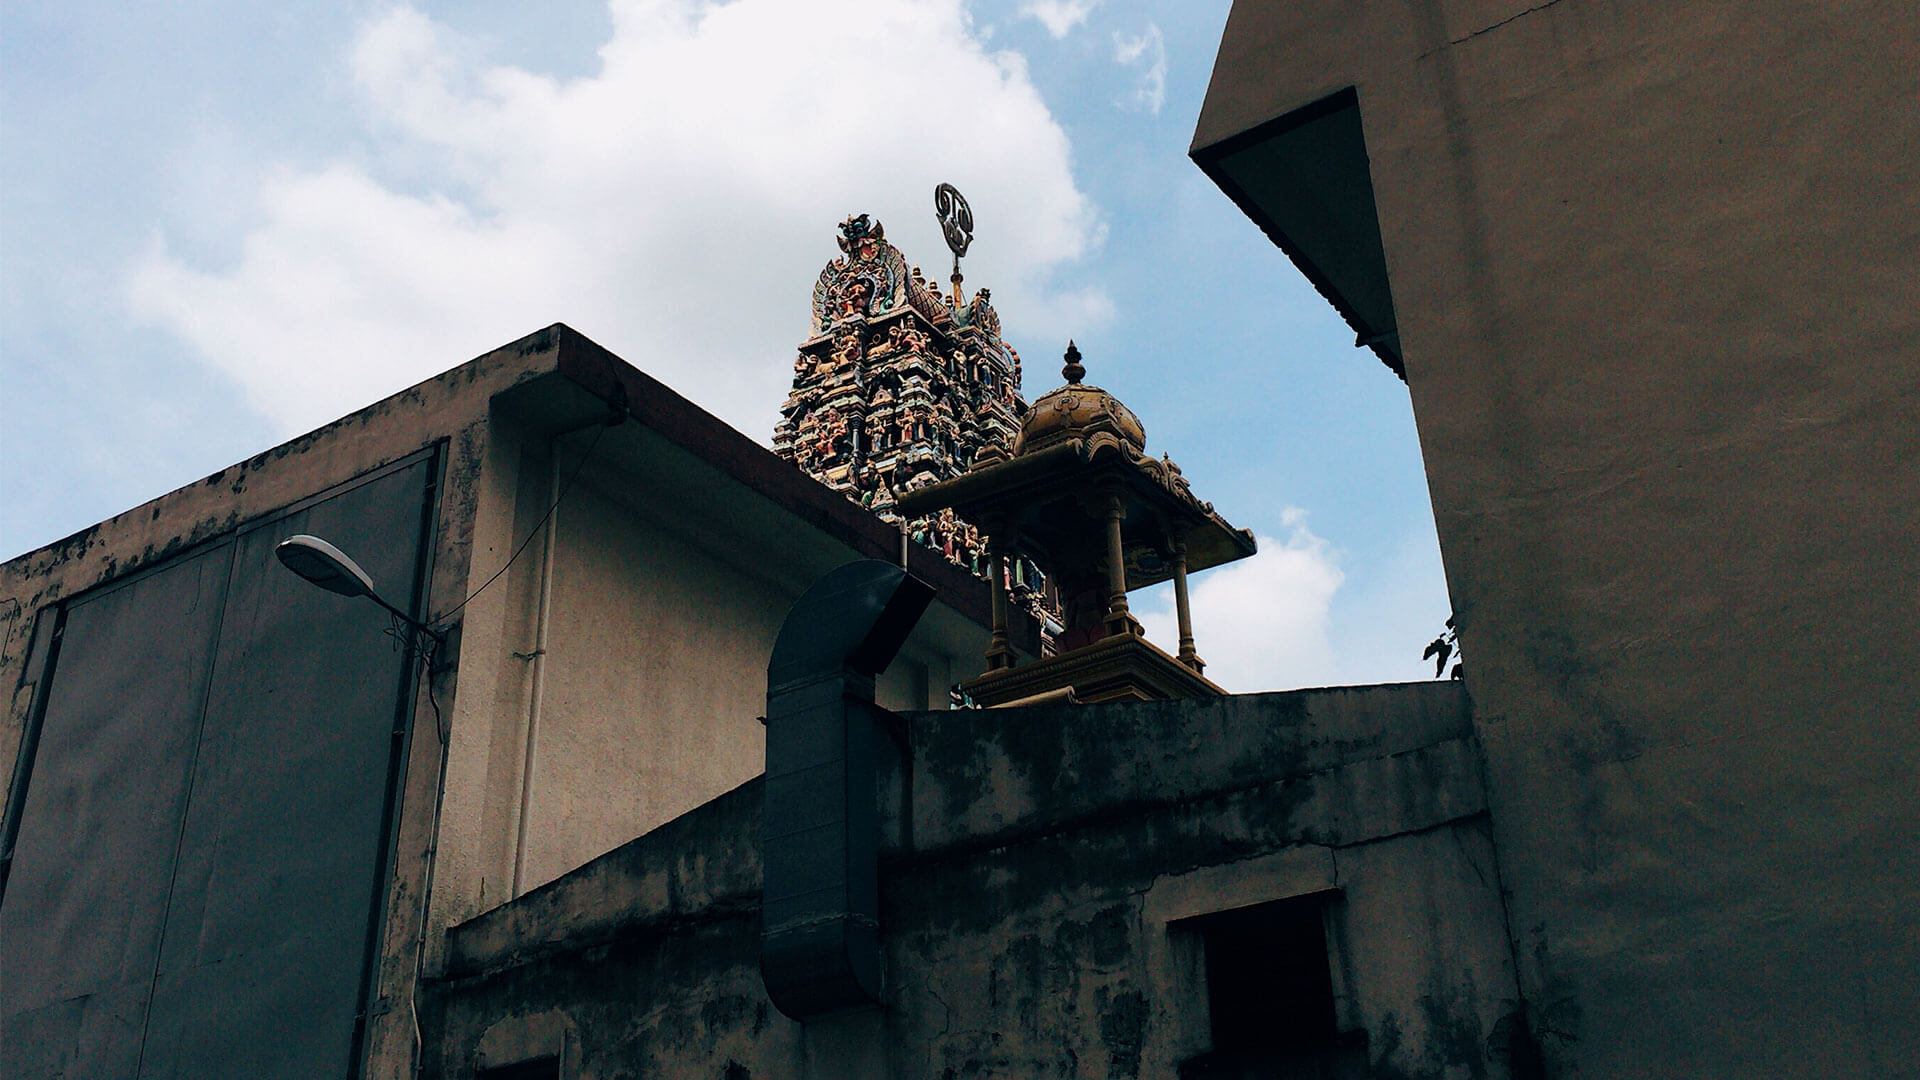 Upward view of a Hindu Kovil in Bukit Bintang